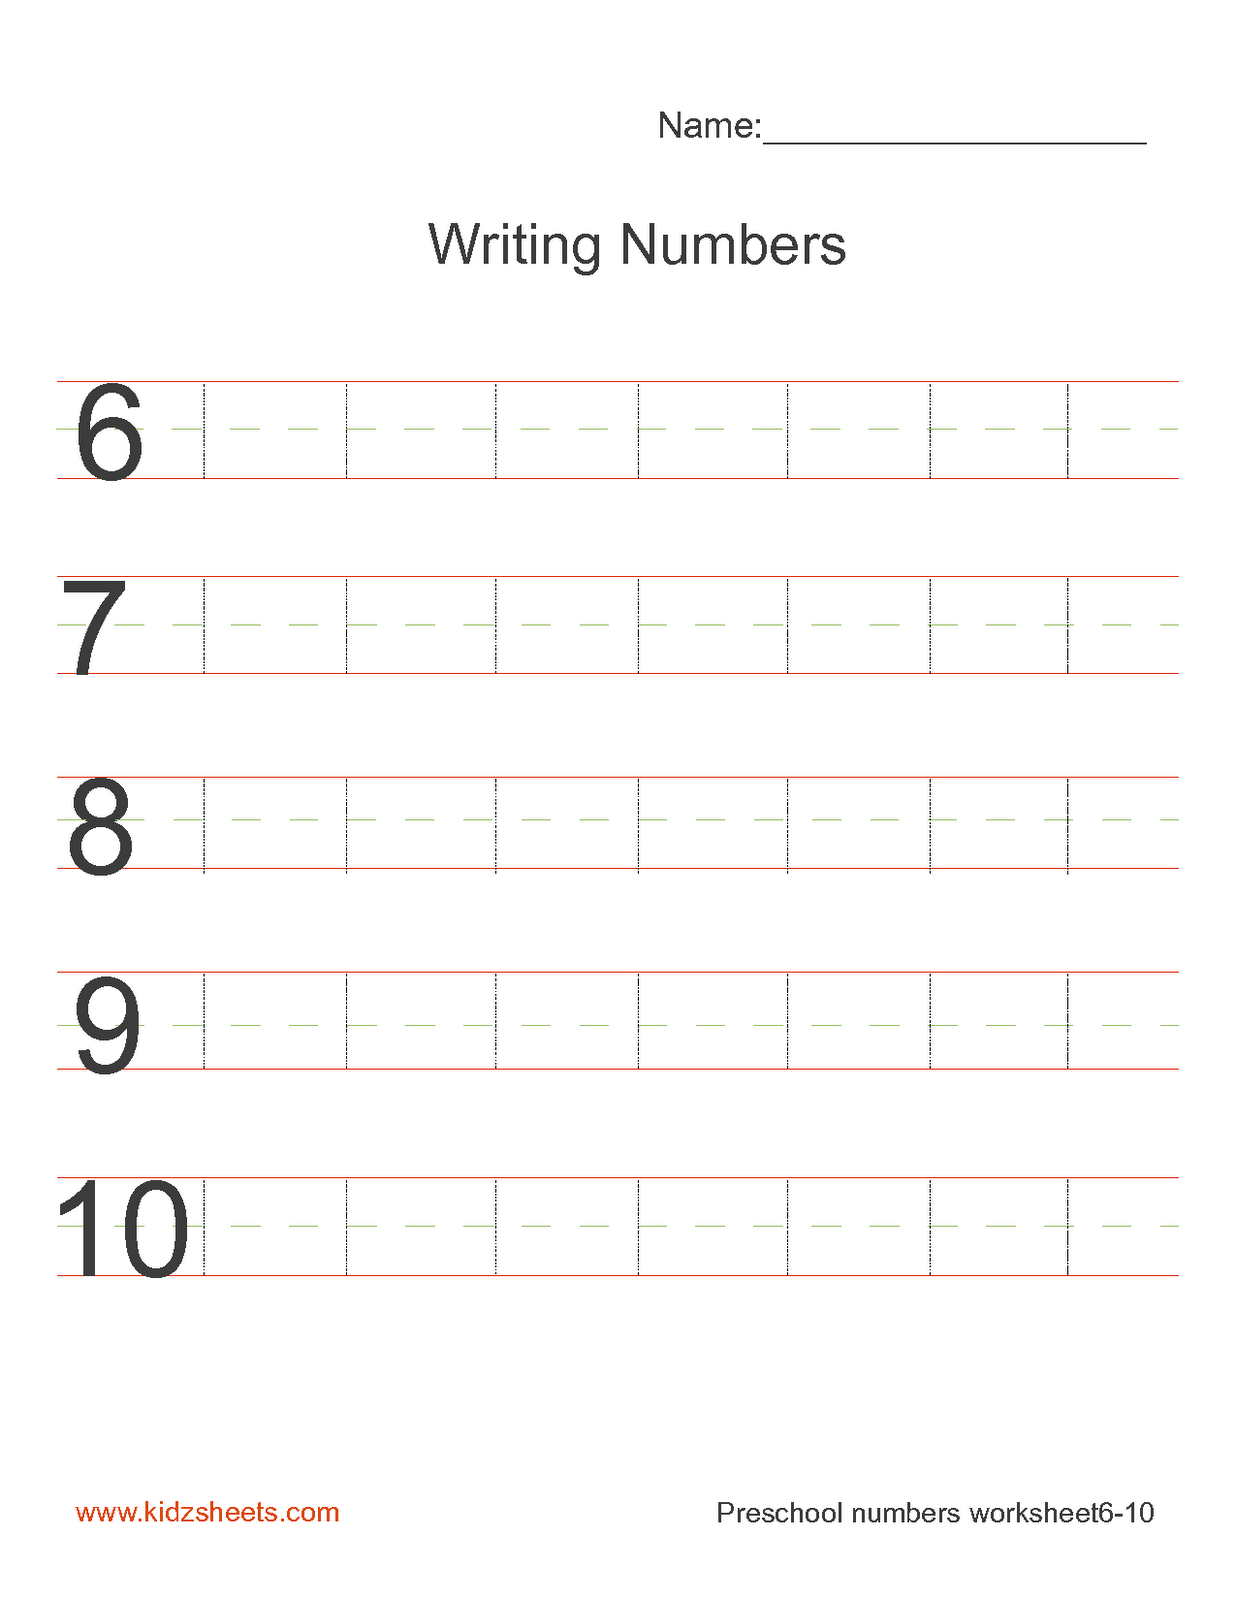 math worksheet : kidz worksheets preschool writing numbers worksheet2 : Maths Number Worksheets